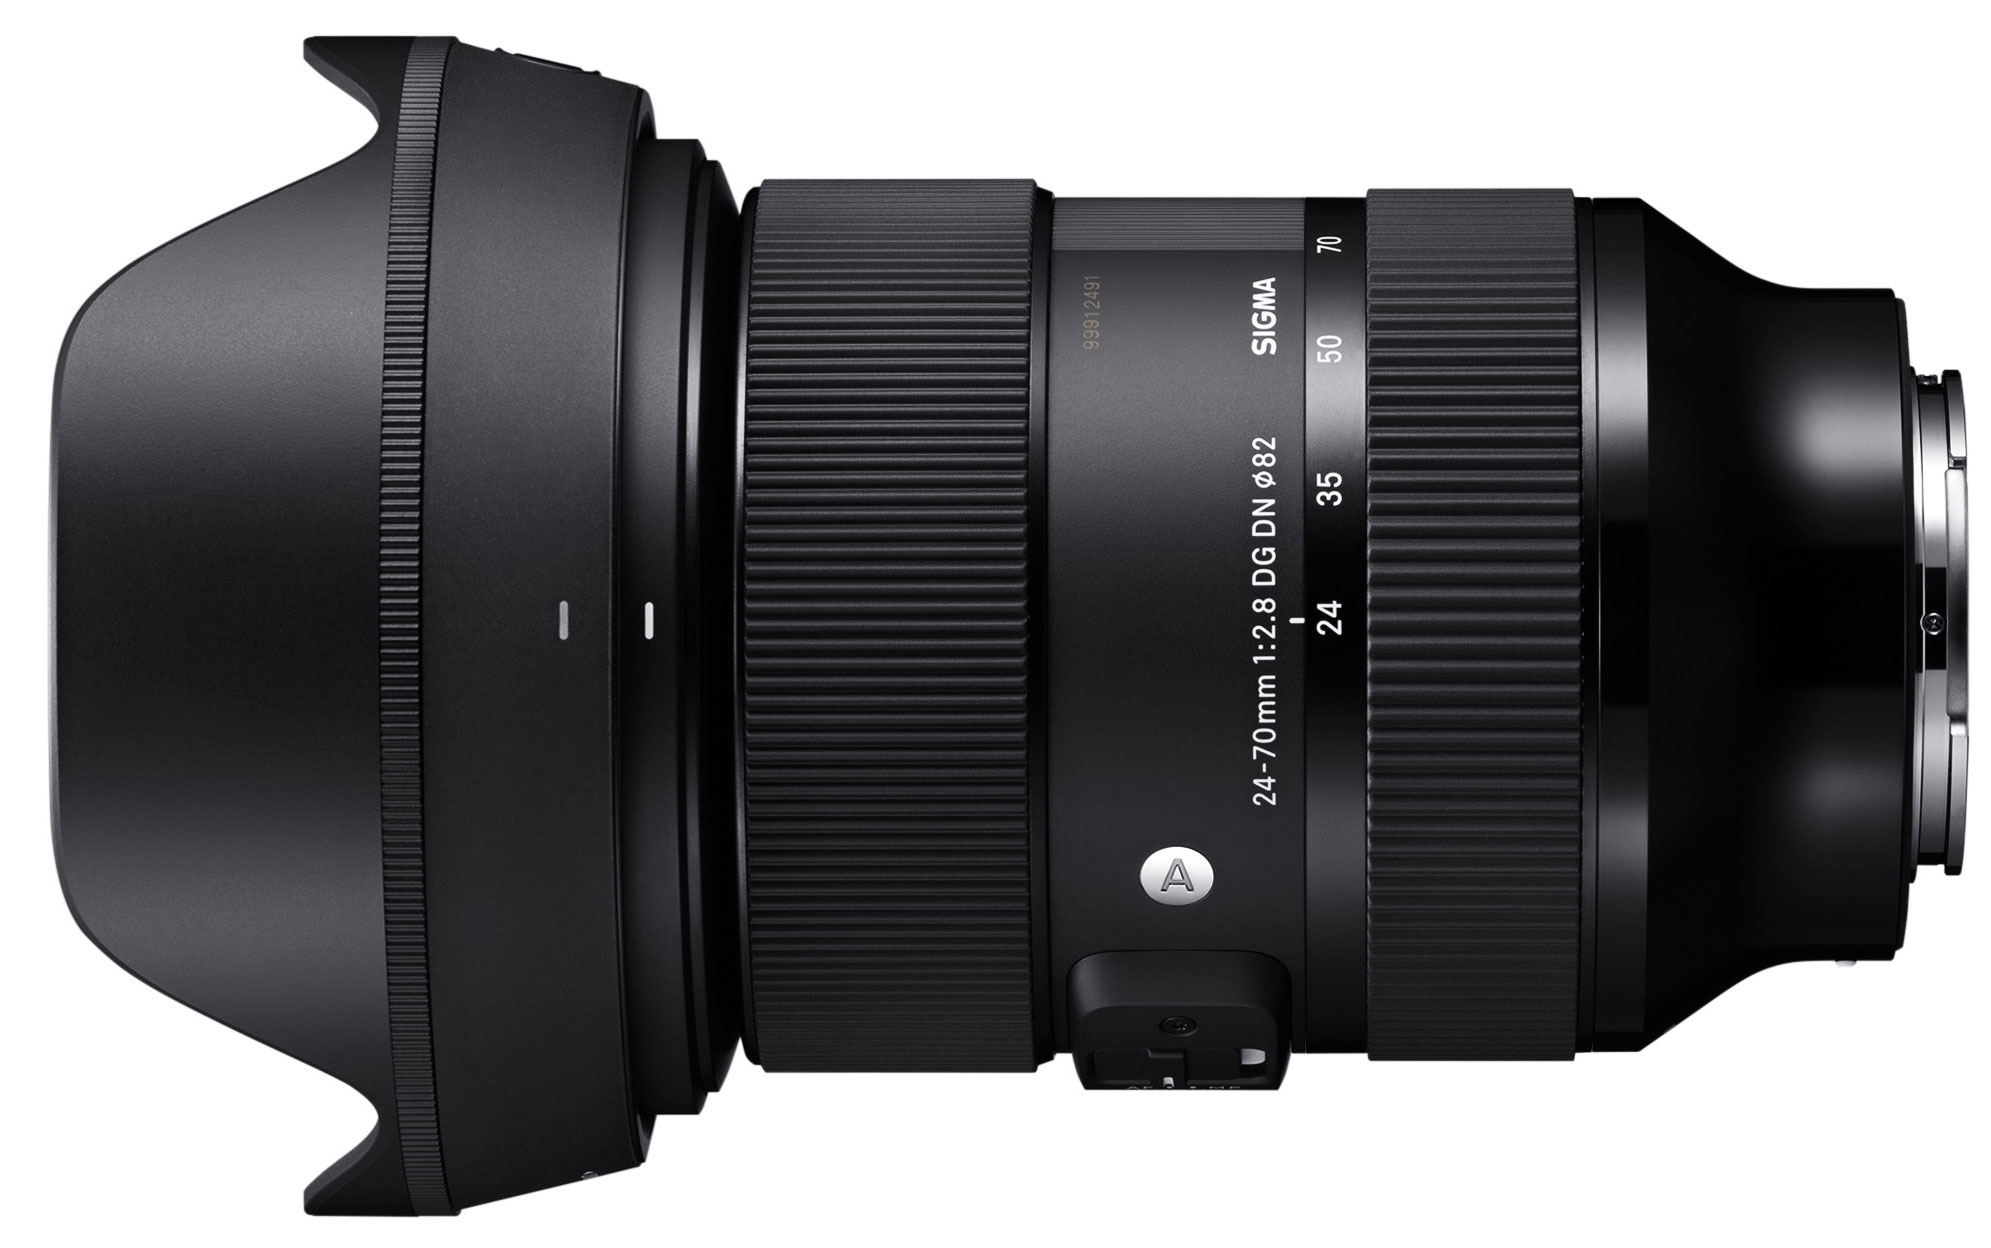 Sigma announces full frame 24-70mm F2.8 DG DN Art Zoom for L-Mount and Sony E-Mount